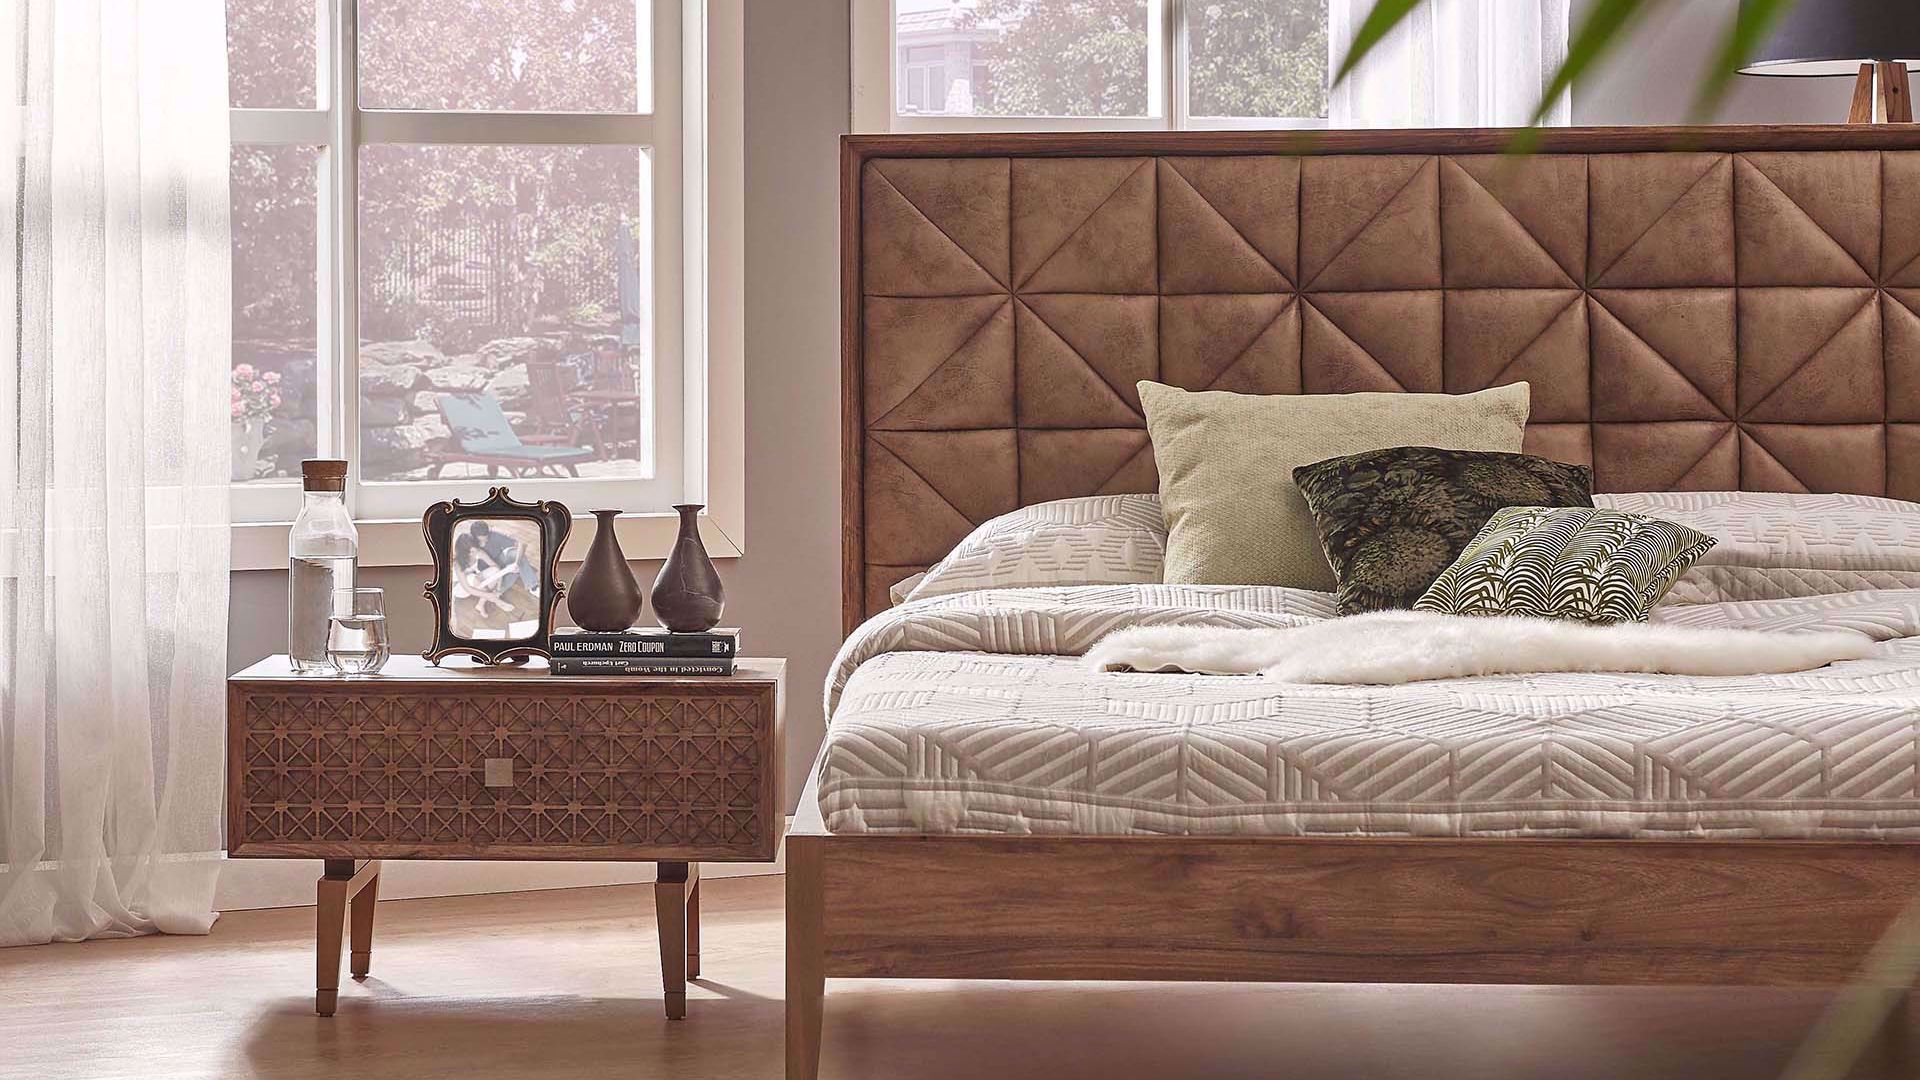 Monema Bedstead (with Base) 160*200cm (Incl. Headboard)